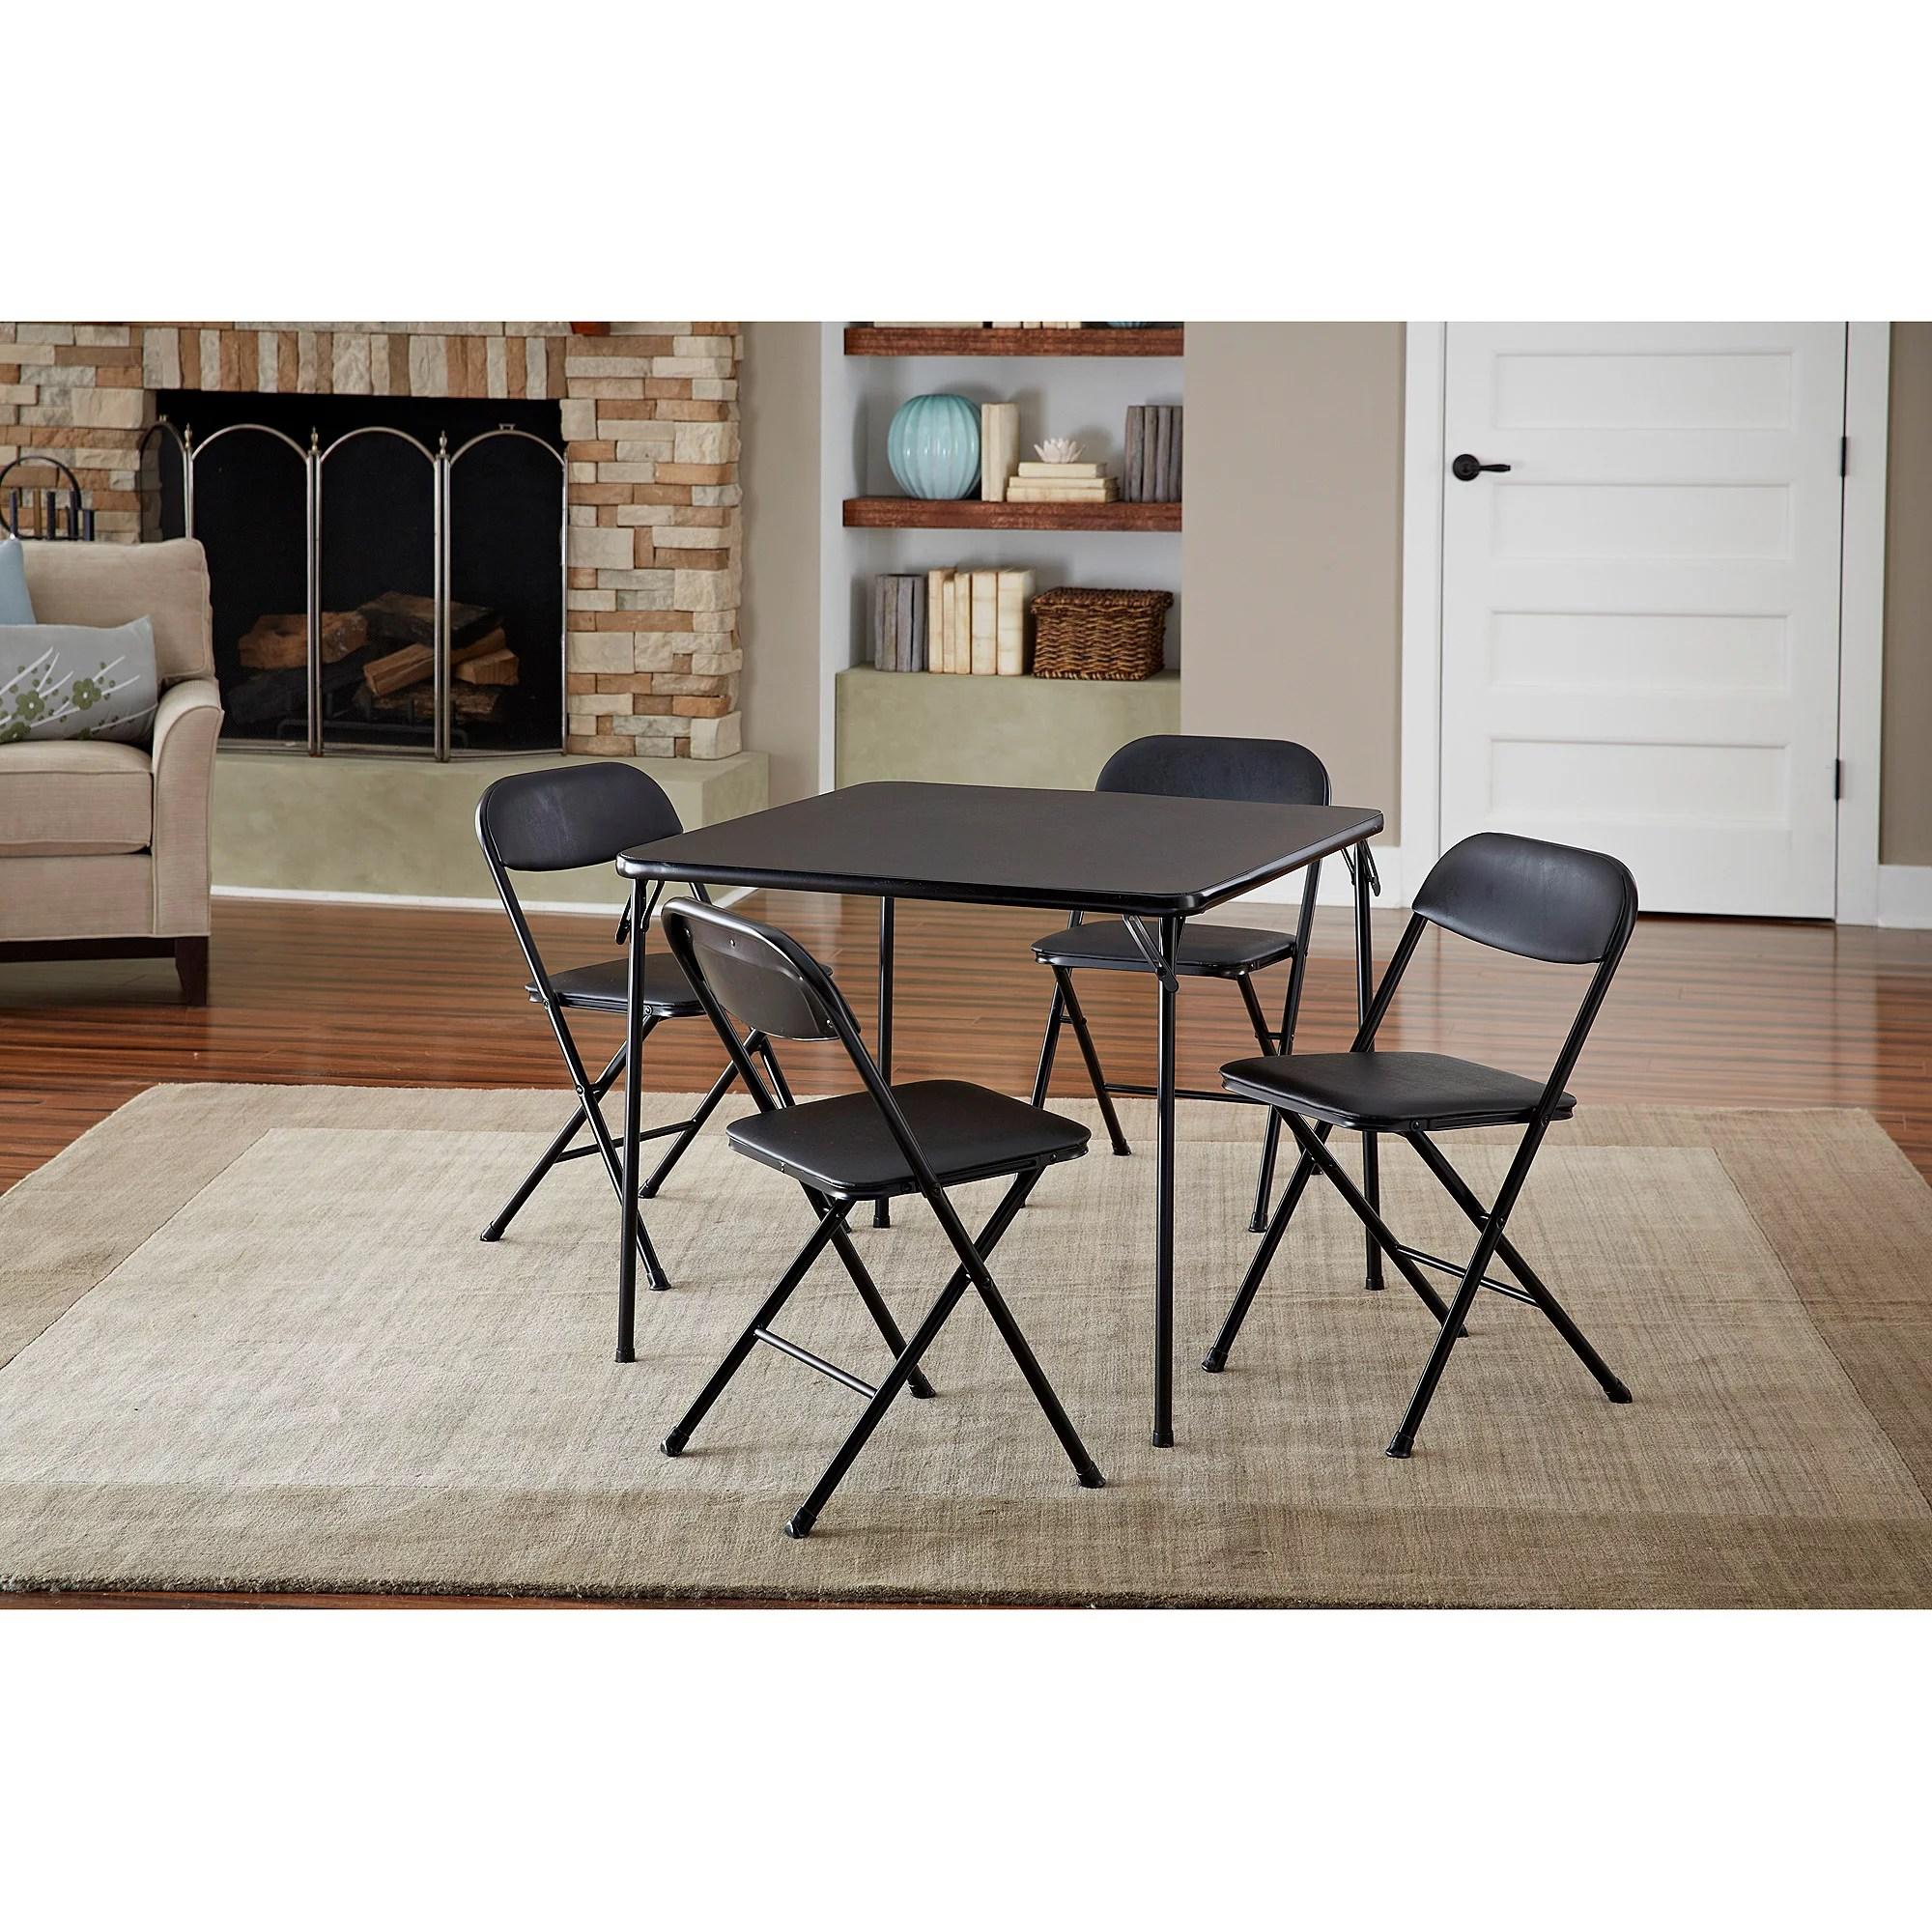 Folding Card Table Canada Cosco 5 Piece Card Table Set Black